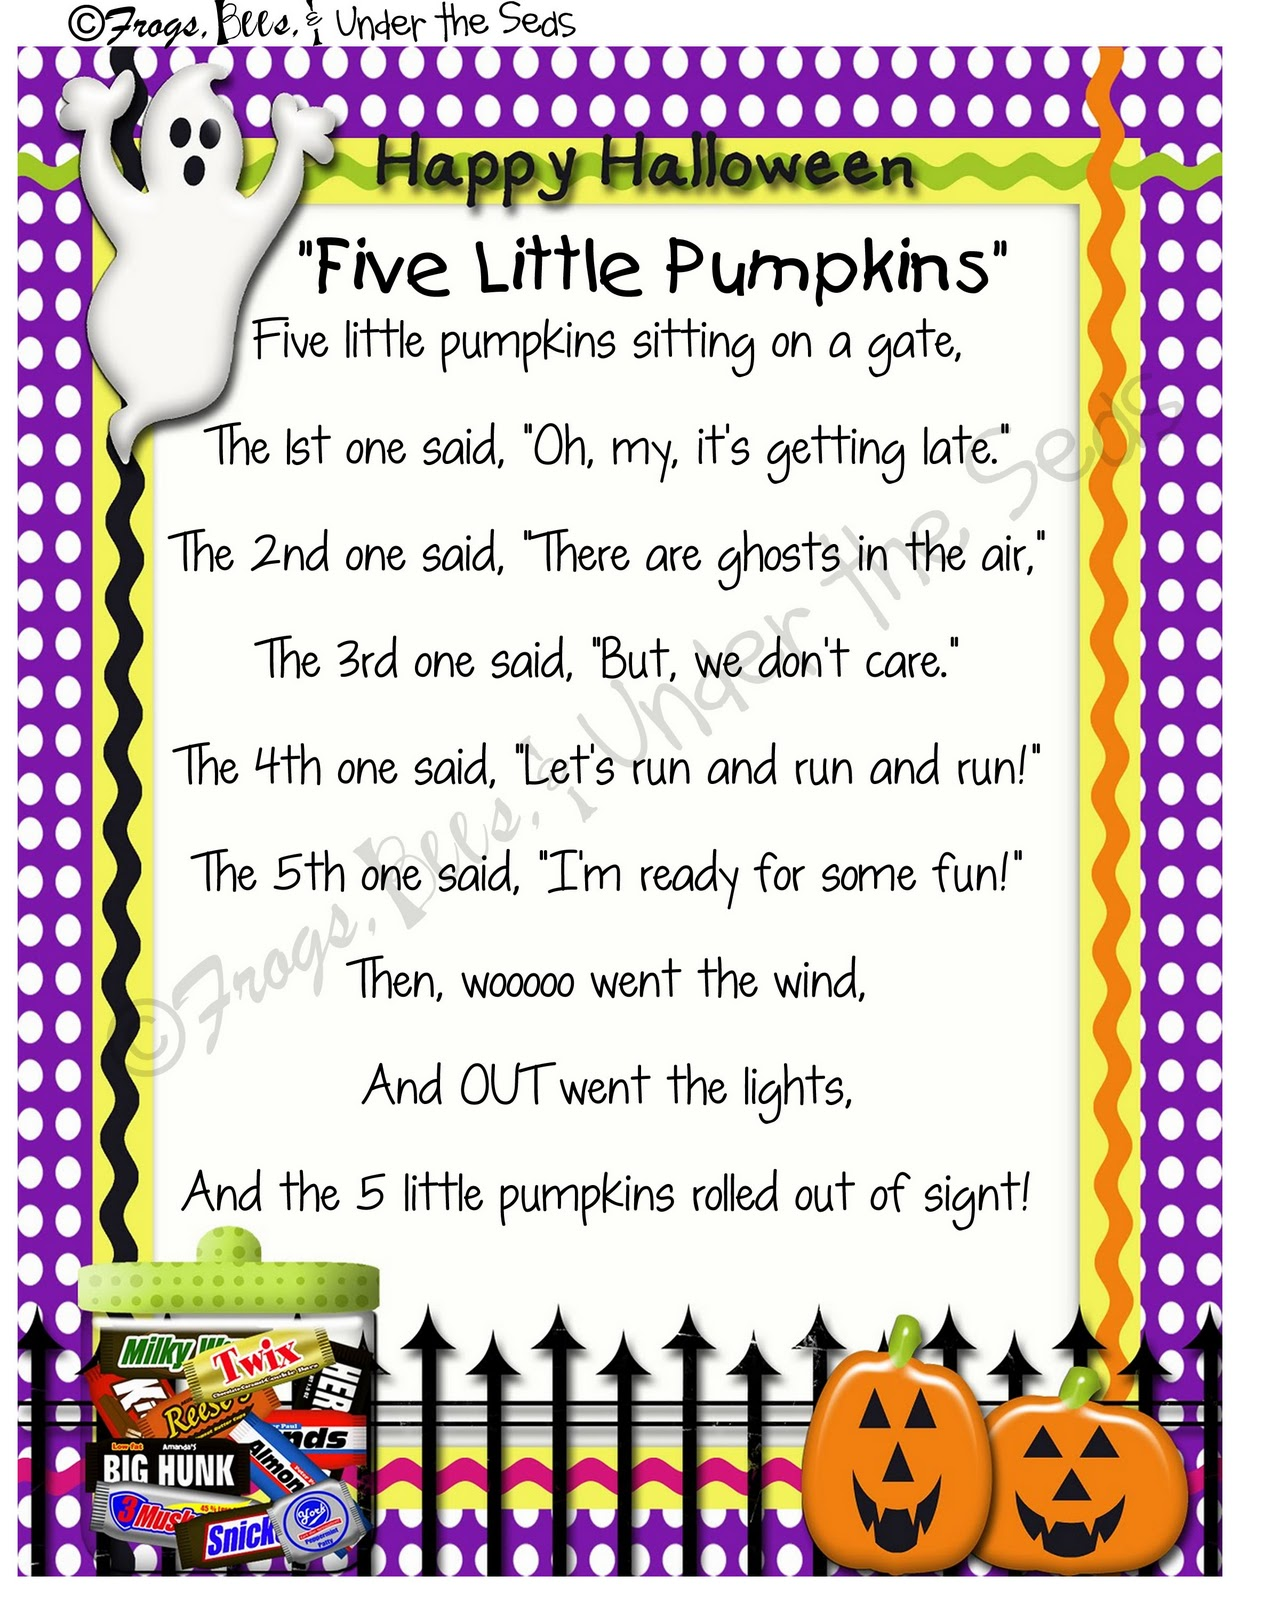 photo regarding 5 Little Pumpkins Printable known as Pixie Chicks: Fresh Inside of the Retailer: 5 Minimal Pumpkins